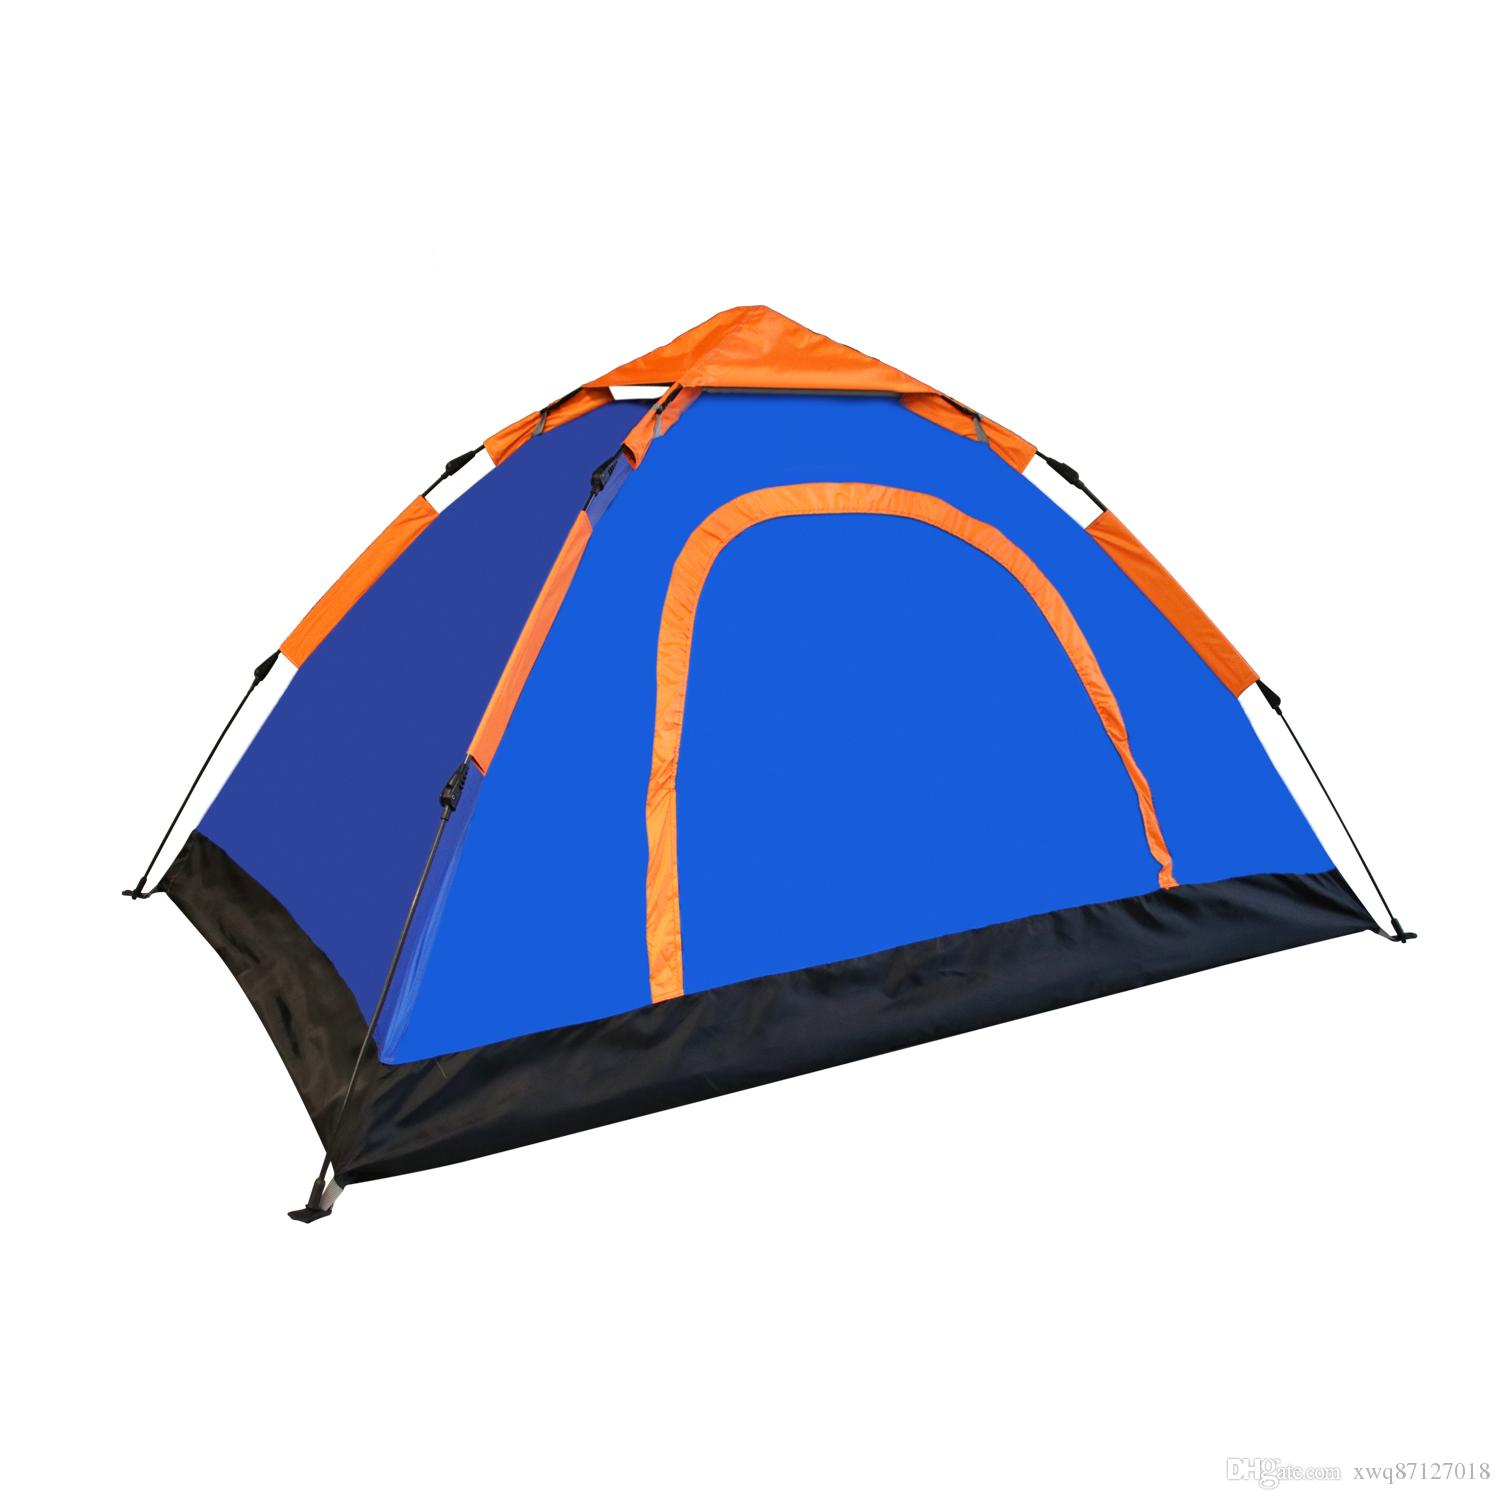 Vihir 3 Season 2 Person C&ing Tents Light Weight Backpacking Tents For Family C&ing Hiking Travel Picnic Winter Tents C& Tent From Xwq87127018 ...  sc 1 st  DHgate.com & Vihir 3 Season 2 Person Camping Tents Light Weight Backpacking ...